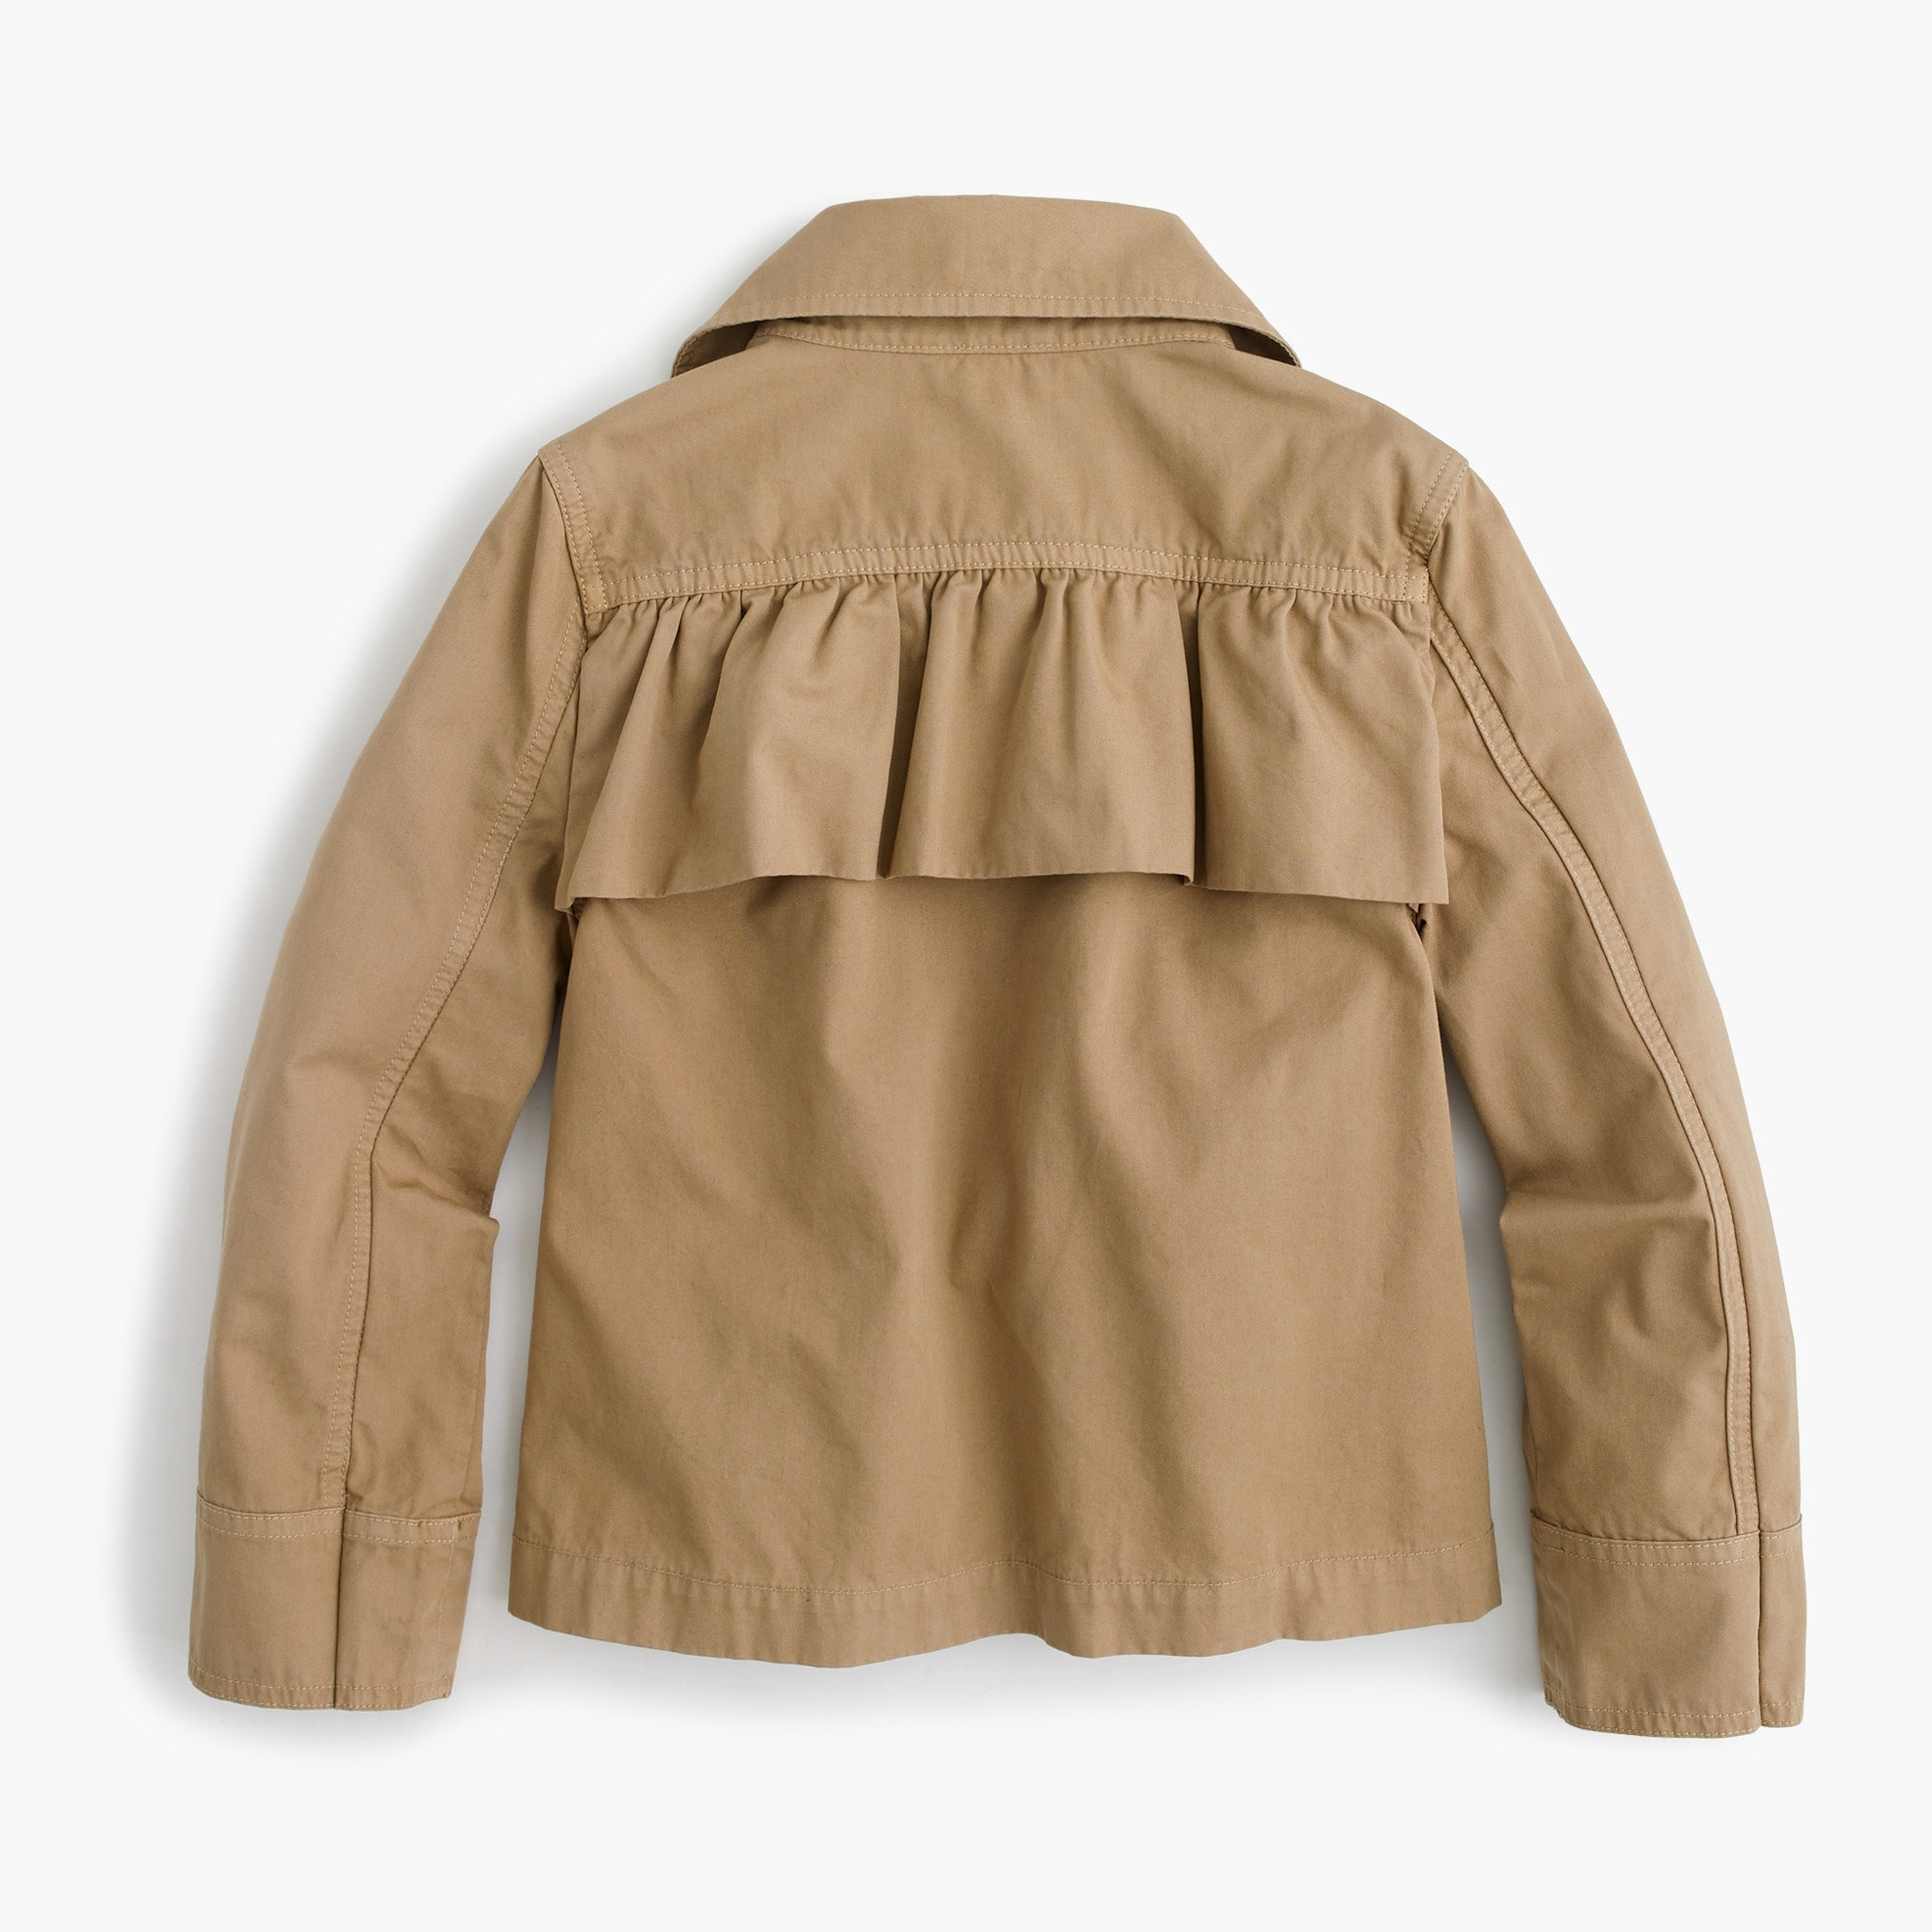 Girls' ruffle-back chino jacket